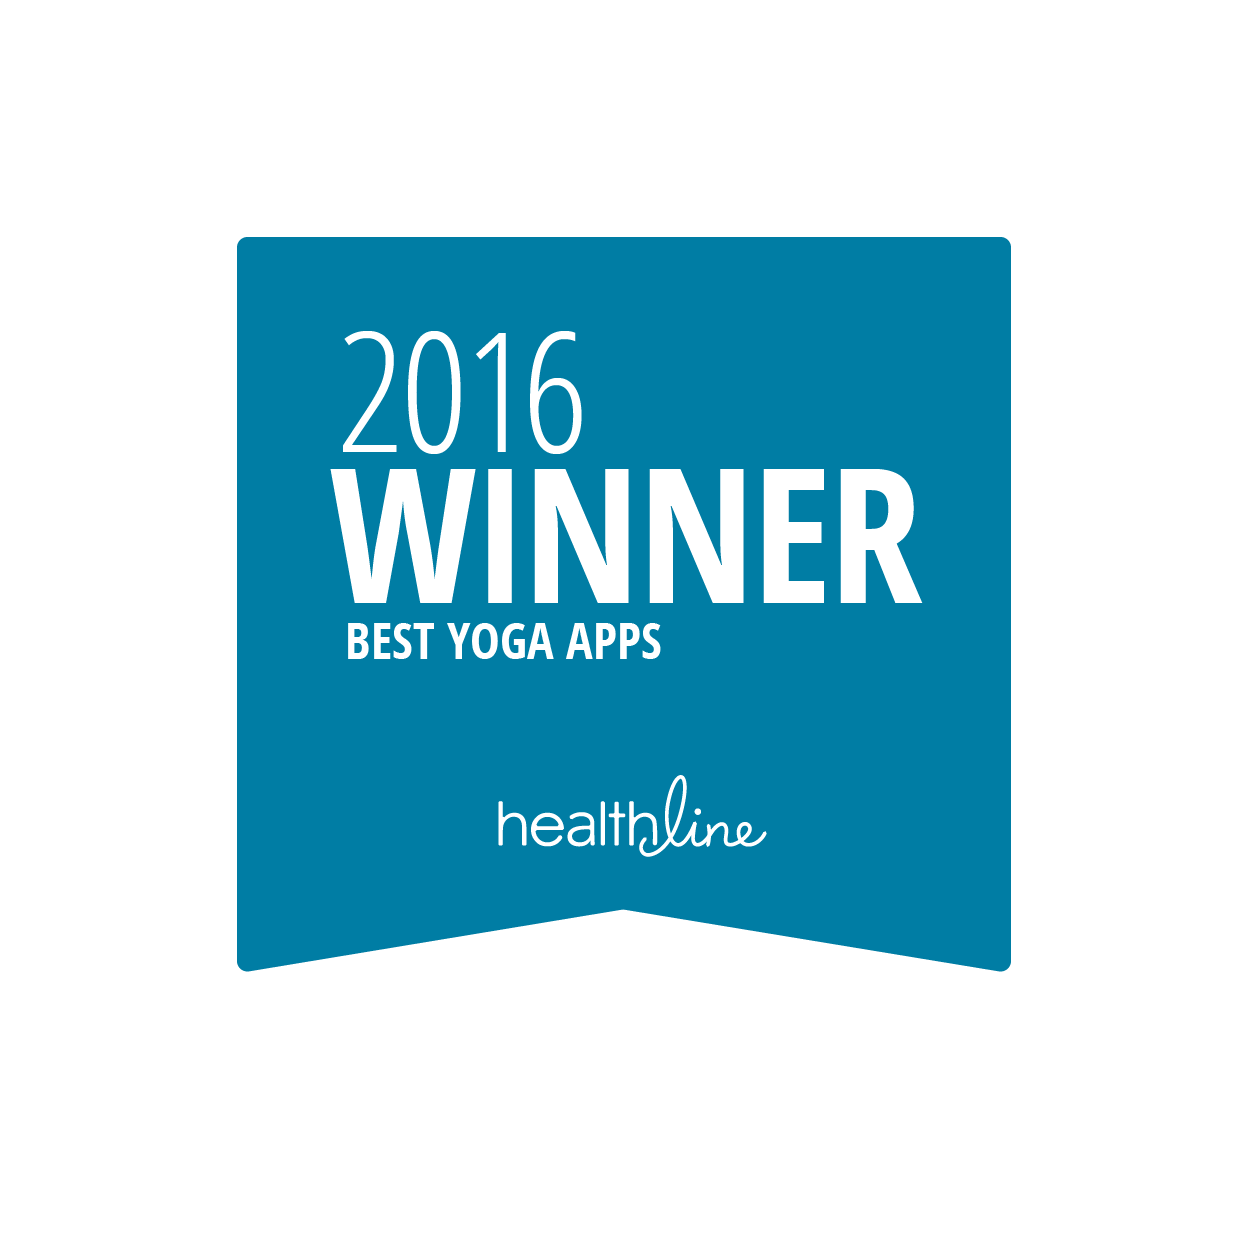 The Best Yoga Apps of 2016